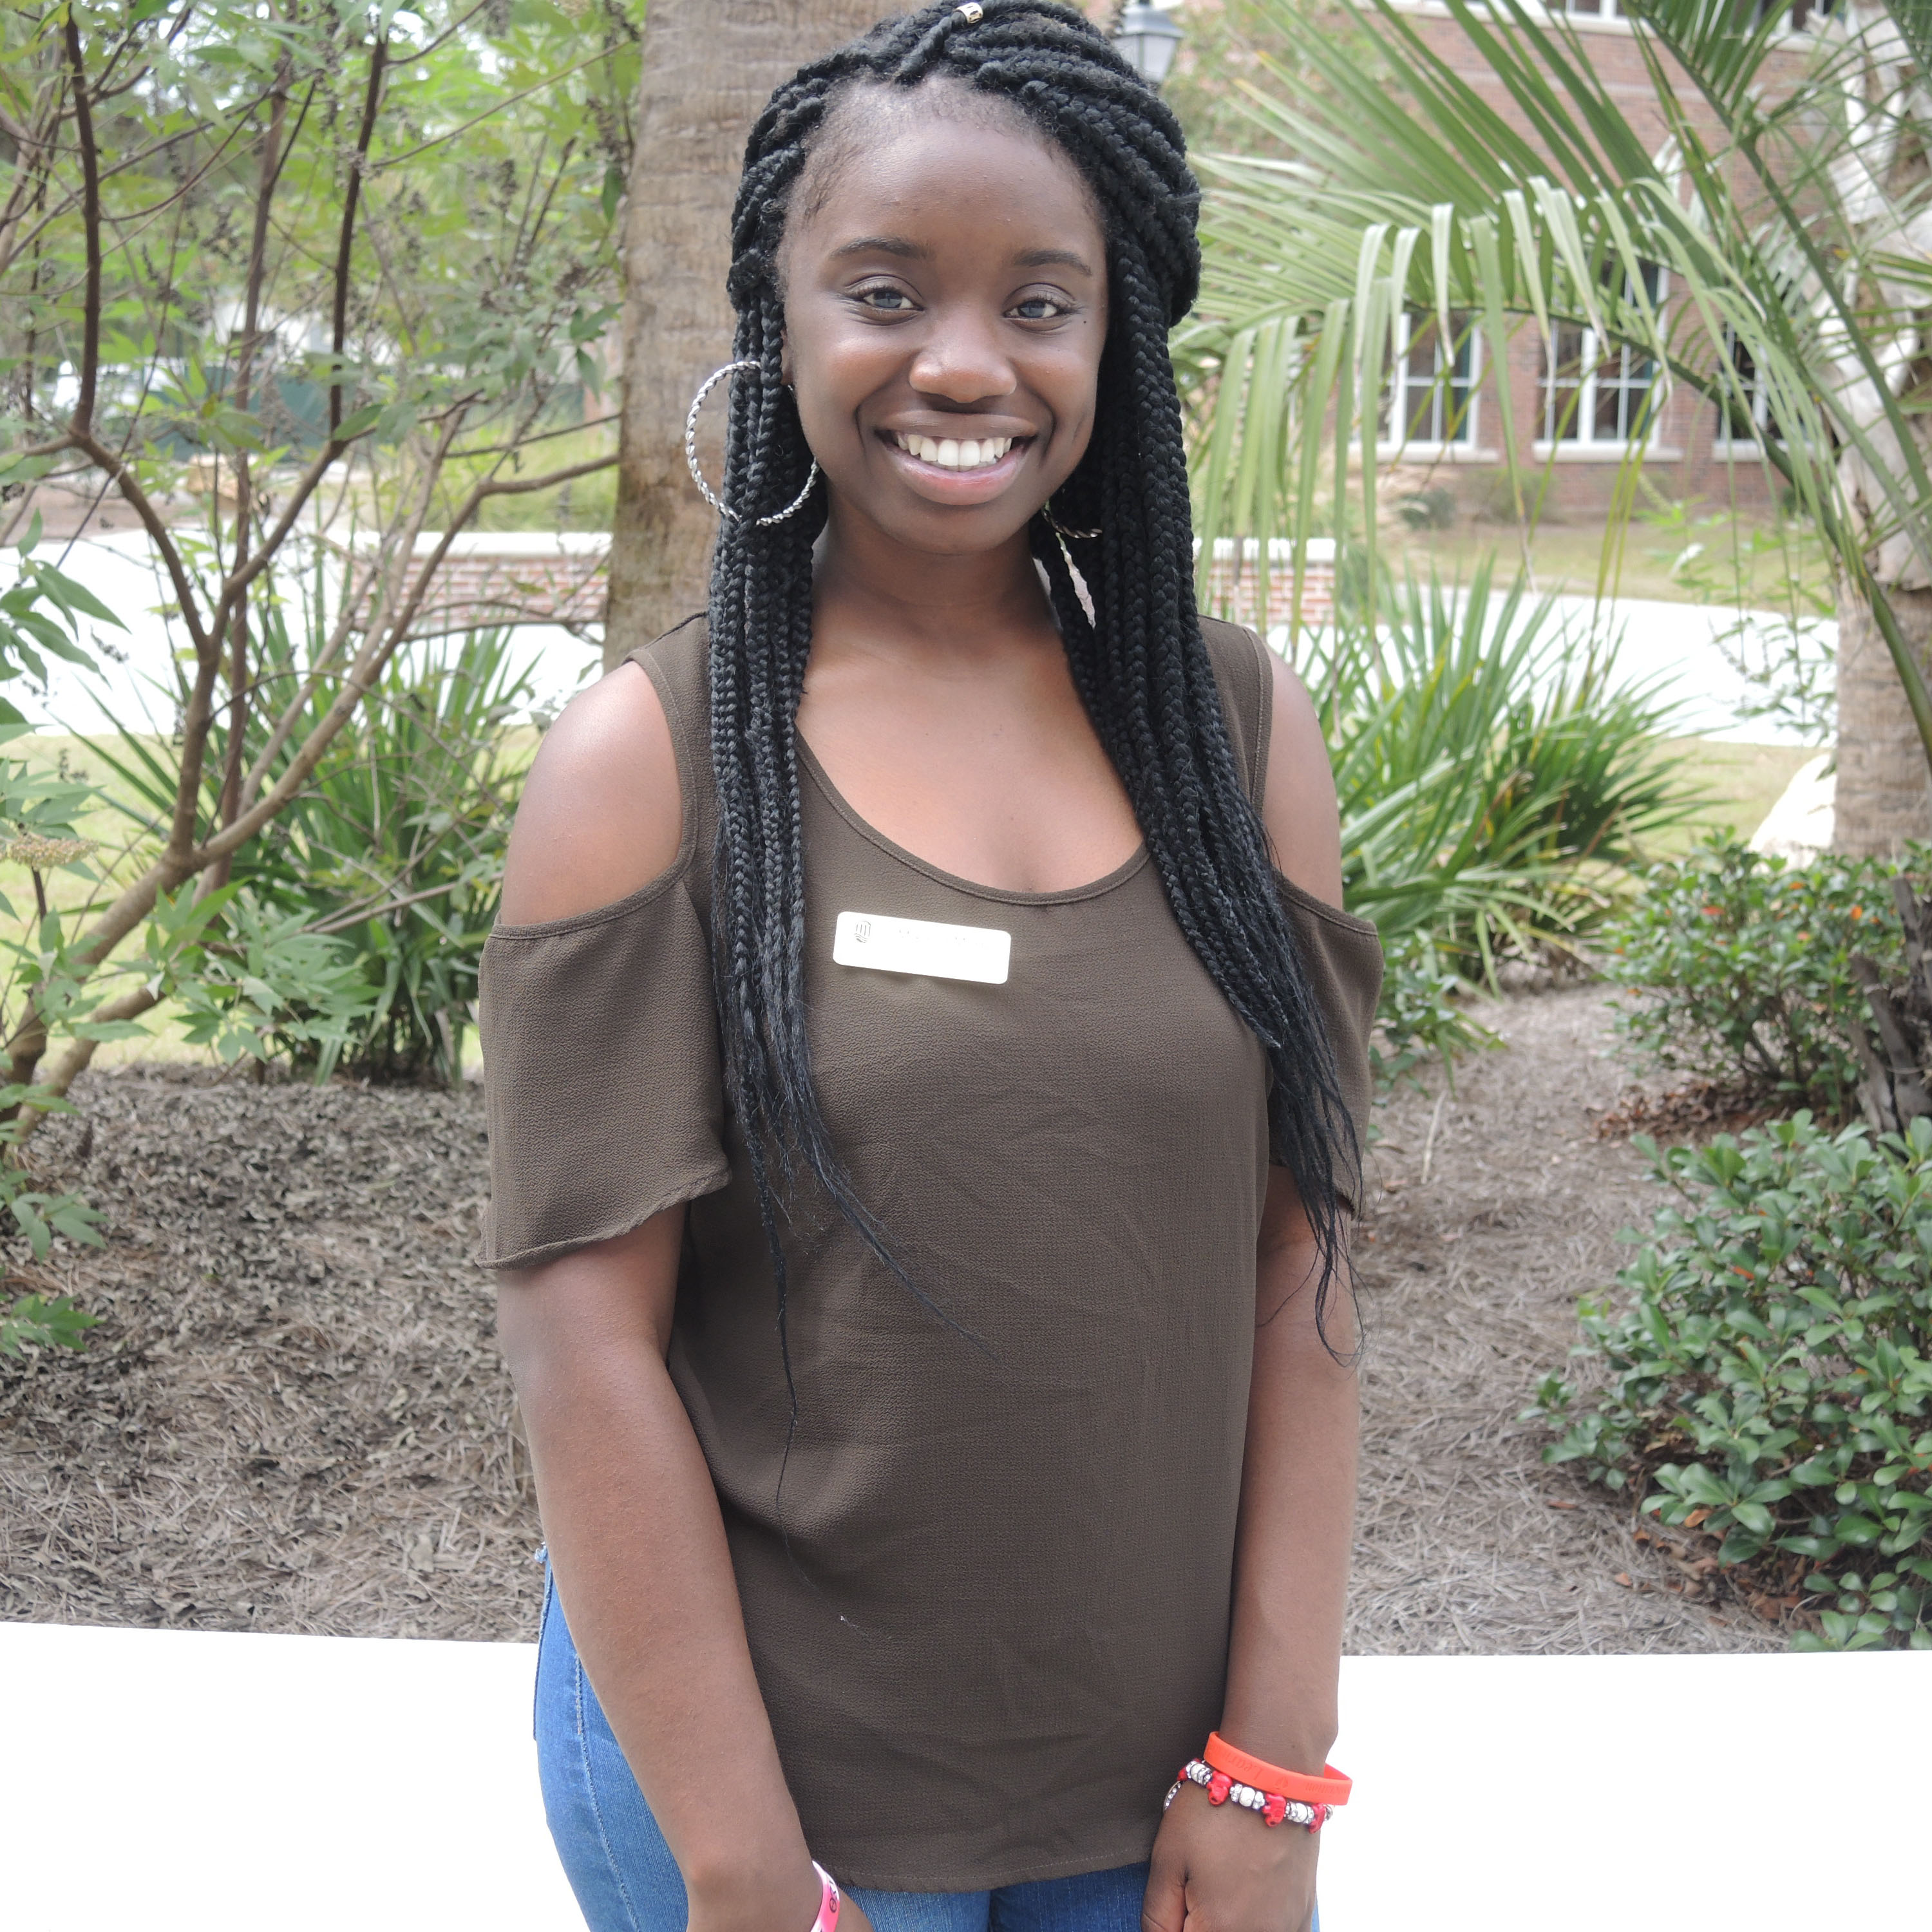 Mikayla is vice president of the #CCU Women of Color group.